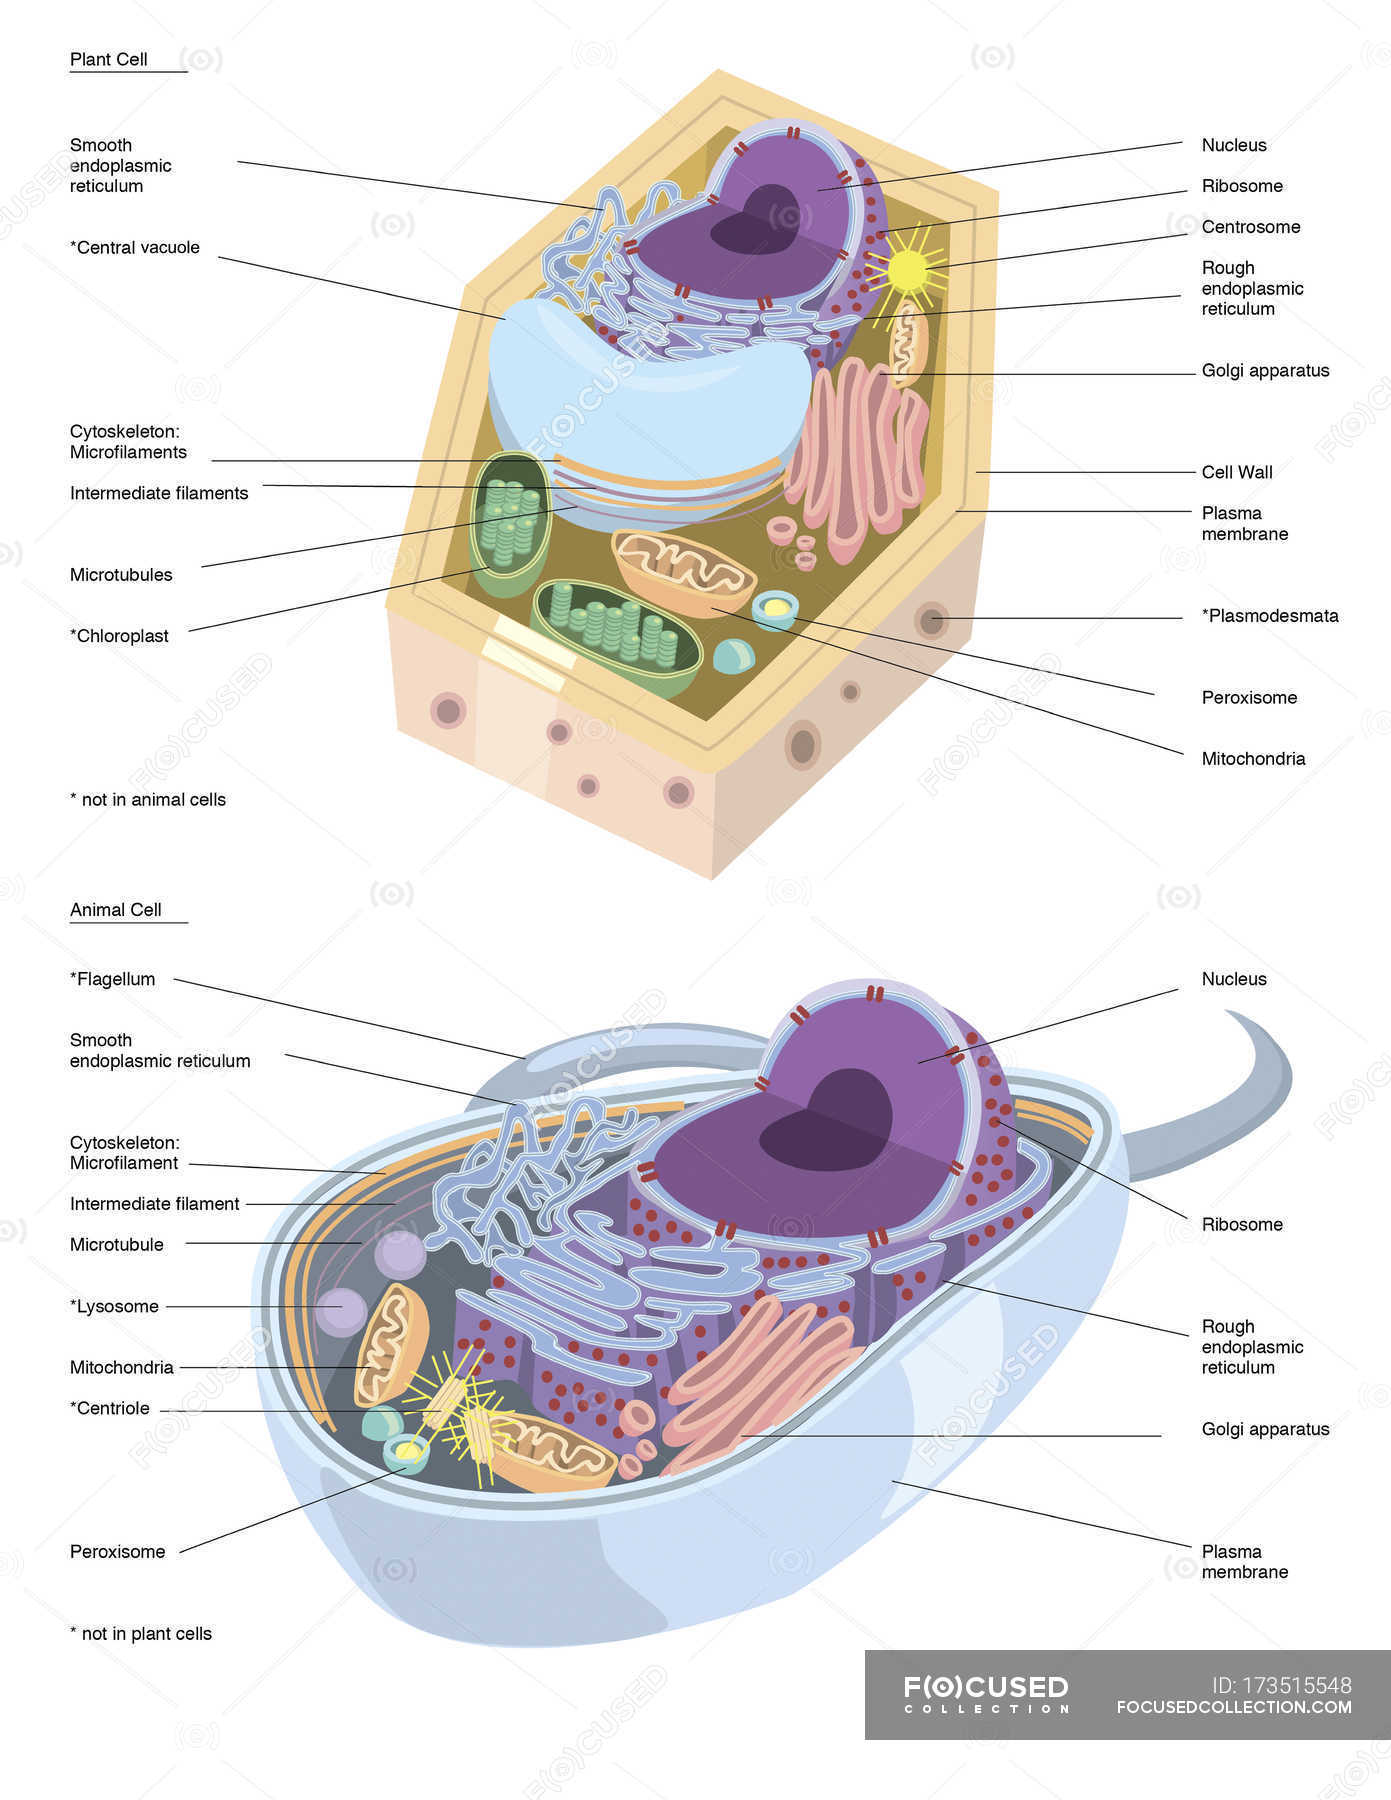 Plant and animal cell anatomy — Stock Photo | #173515548